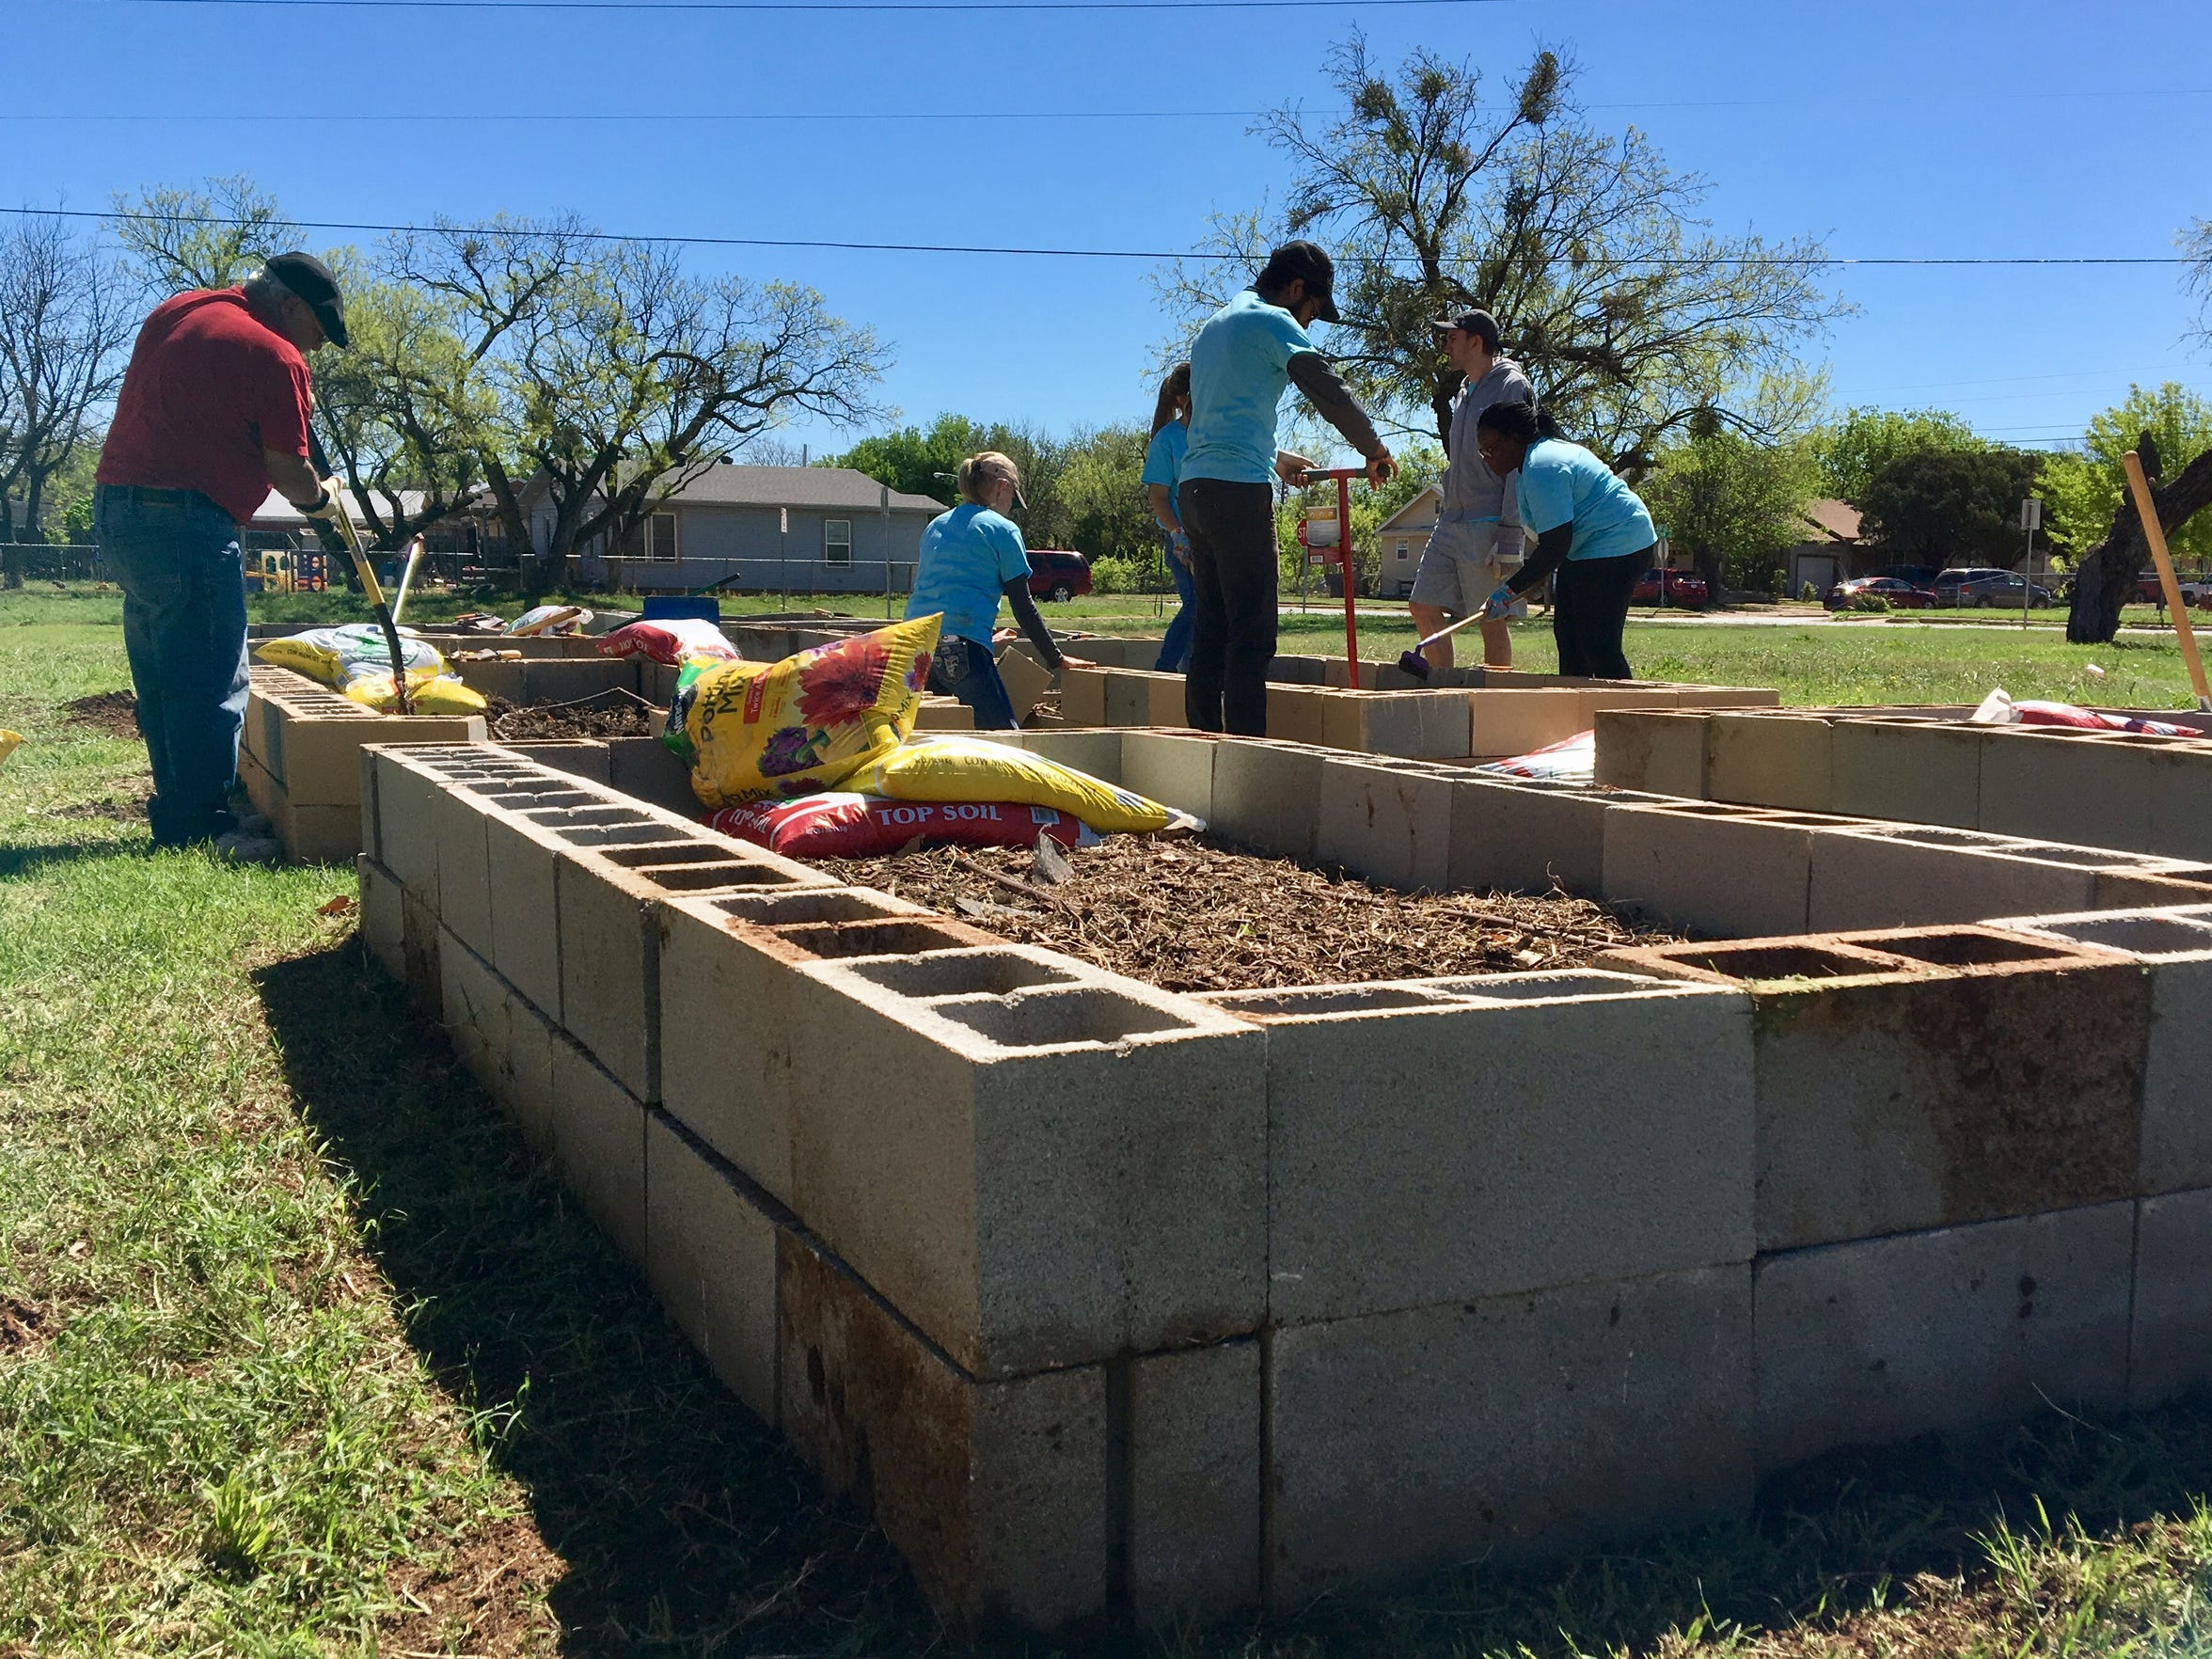 From left: Master Gardener Gilbert  Rodriguez and AmeriCorps VISTA members Terry New, Saul Delgado, I'Esha Baber and Robert McCabe work on garden beds at the Mercy Clinic community garden on March 25, 2017.